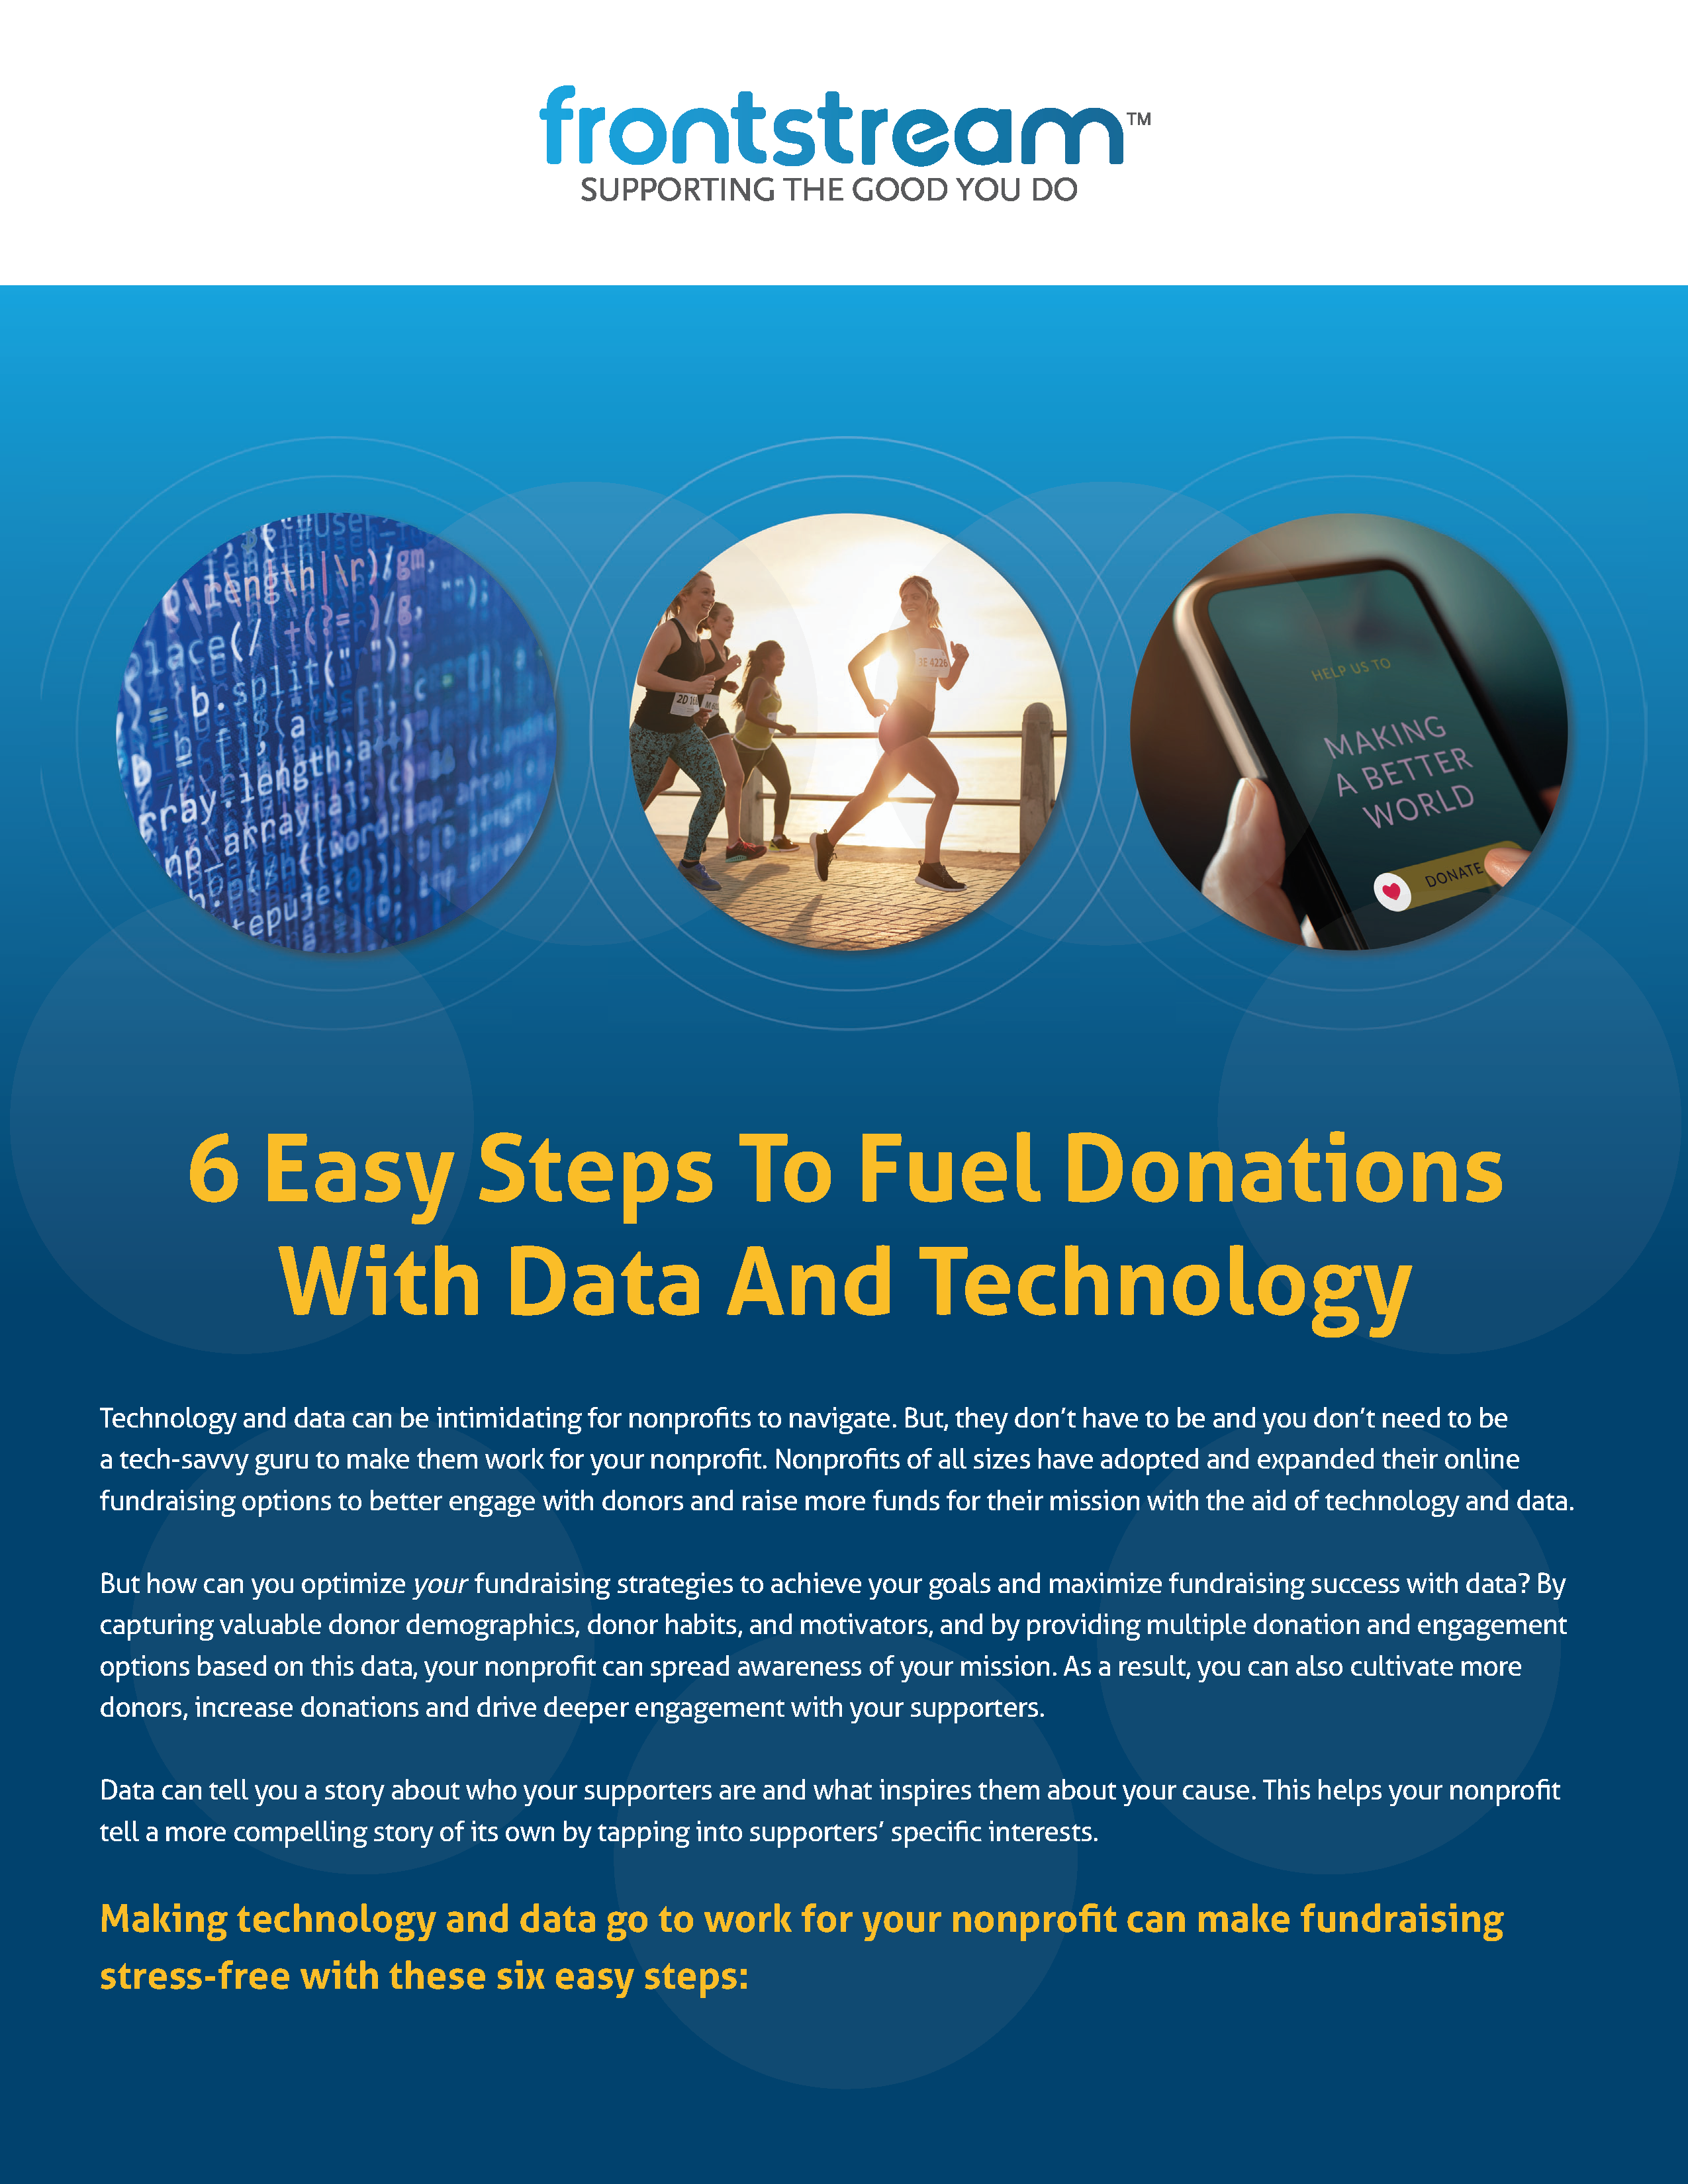 6 Easy Steps To Fuel Donations Cover